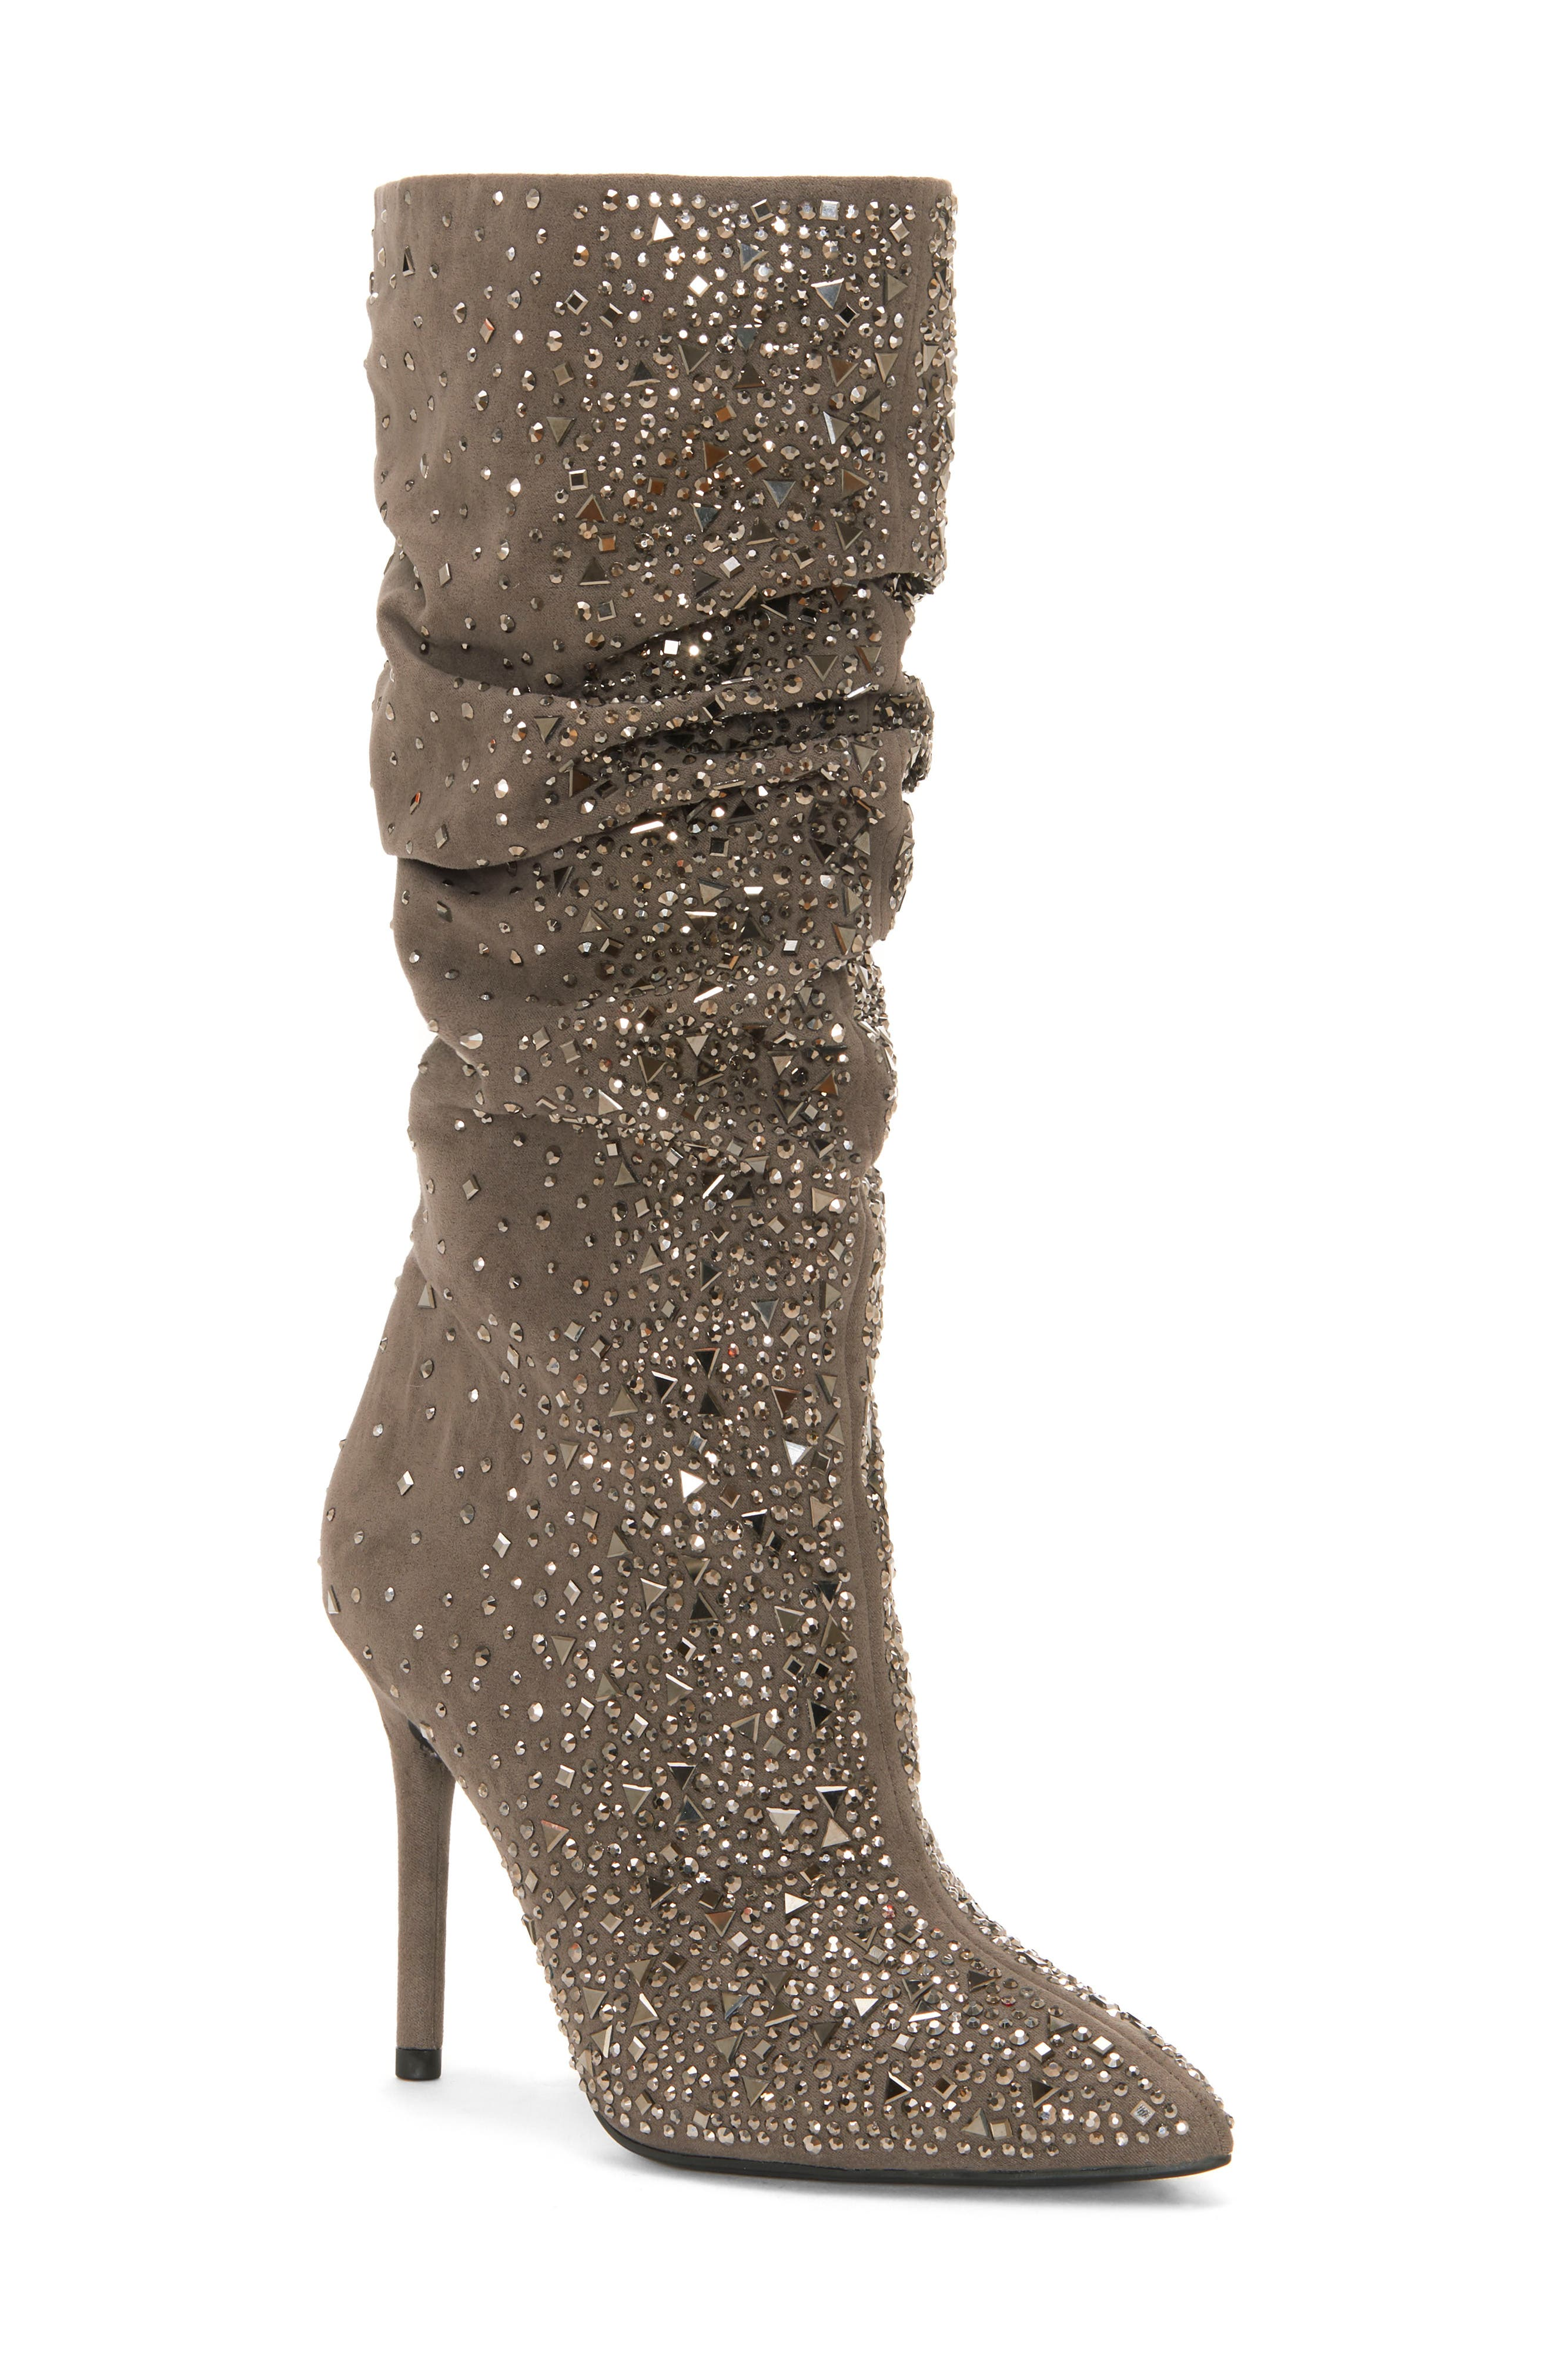 Jessica Simpson Lailee Boot, Grey